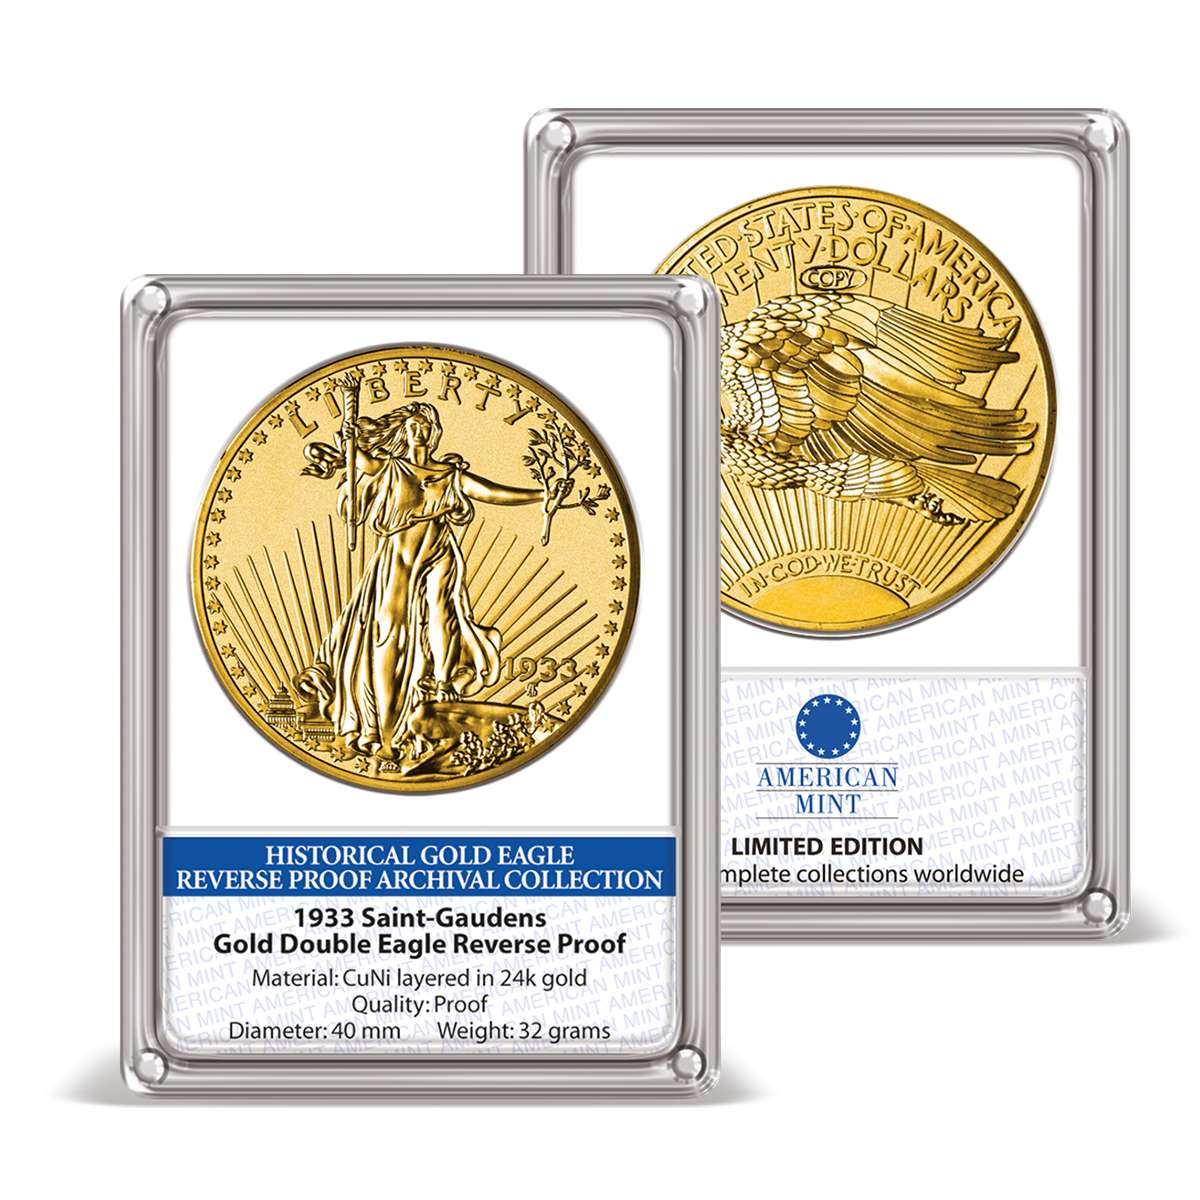 1933 Gold Double Eagle Reverse Proof Archival Edition